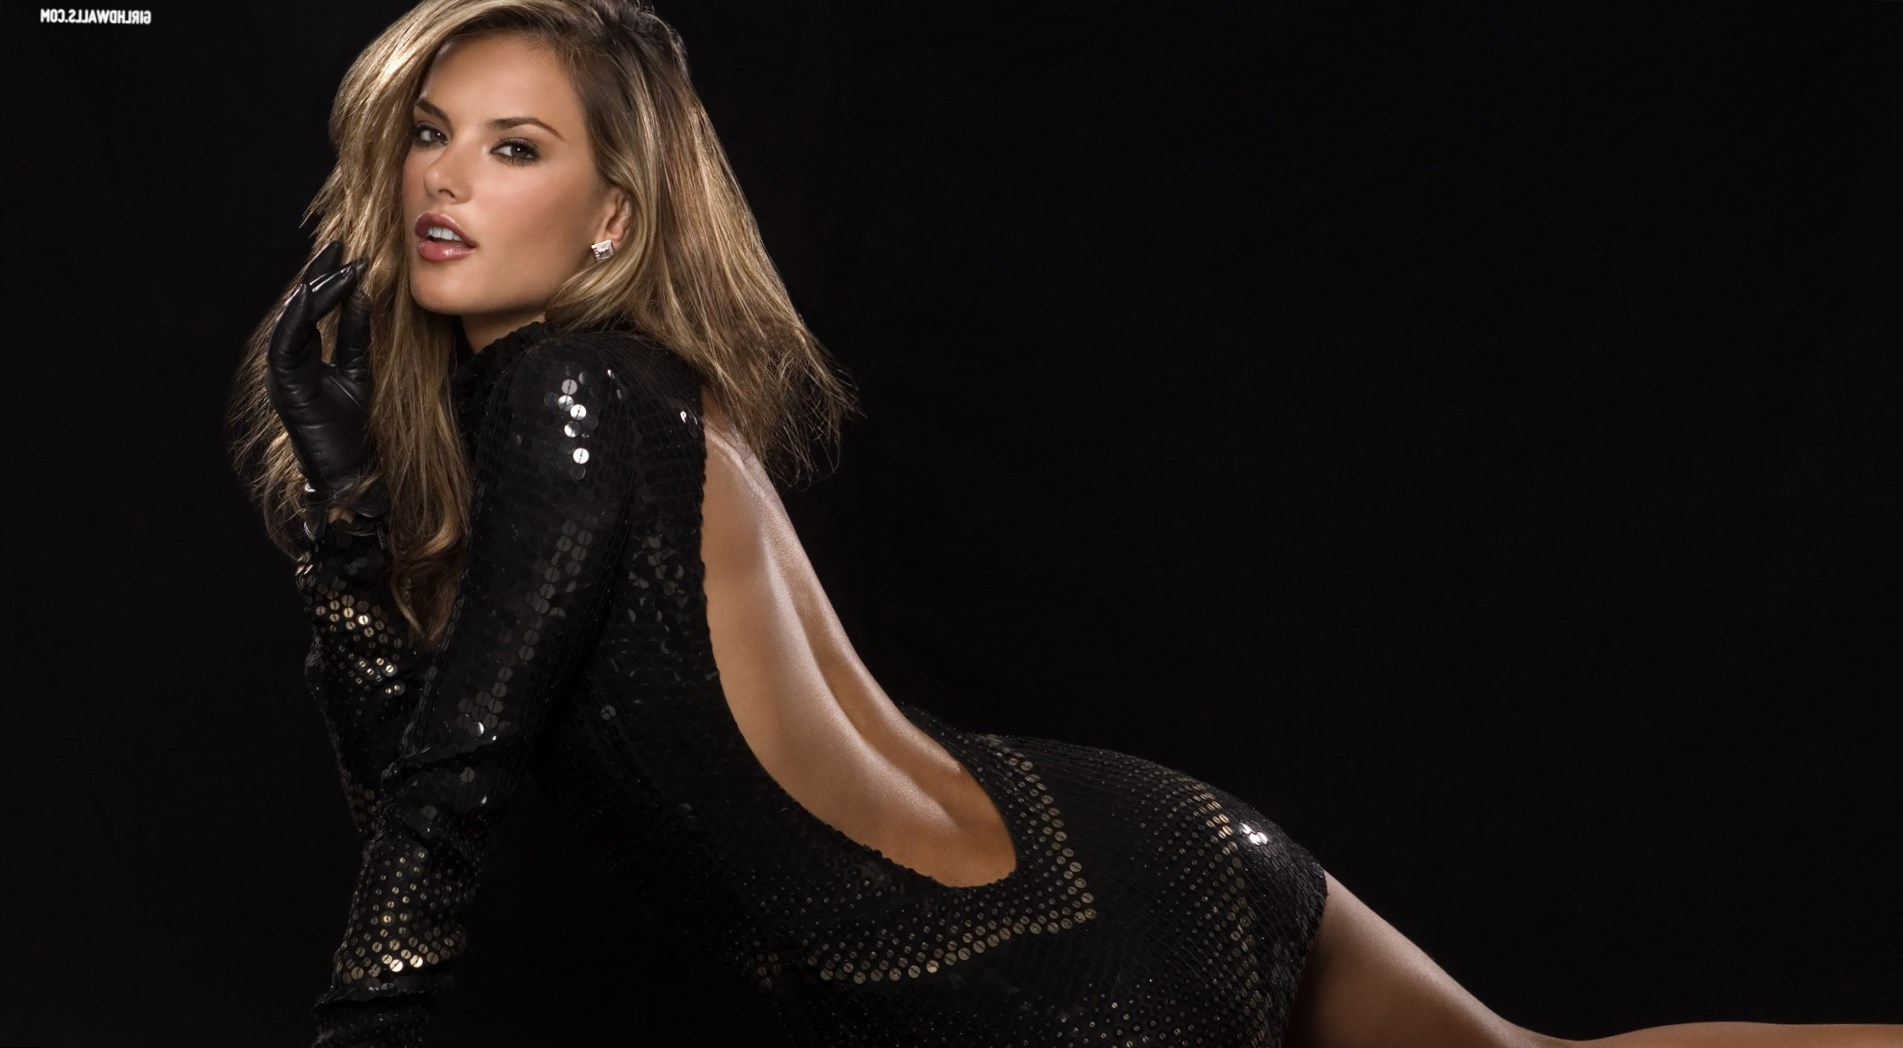 Alessandra Ambrosio Height, Weight and Body Measurements